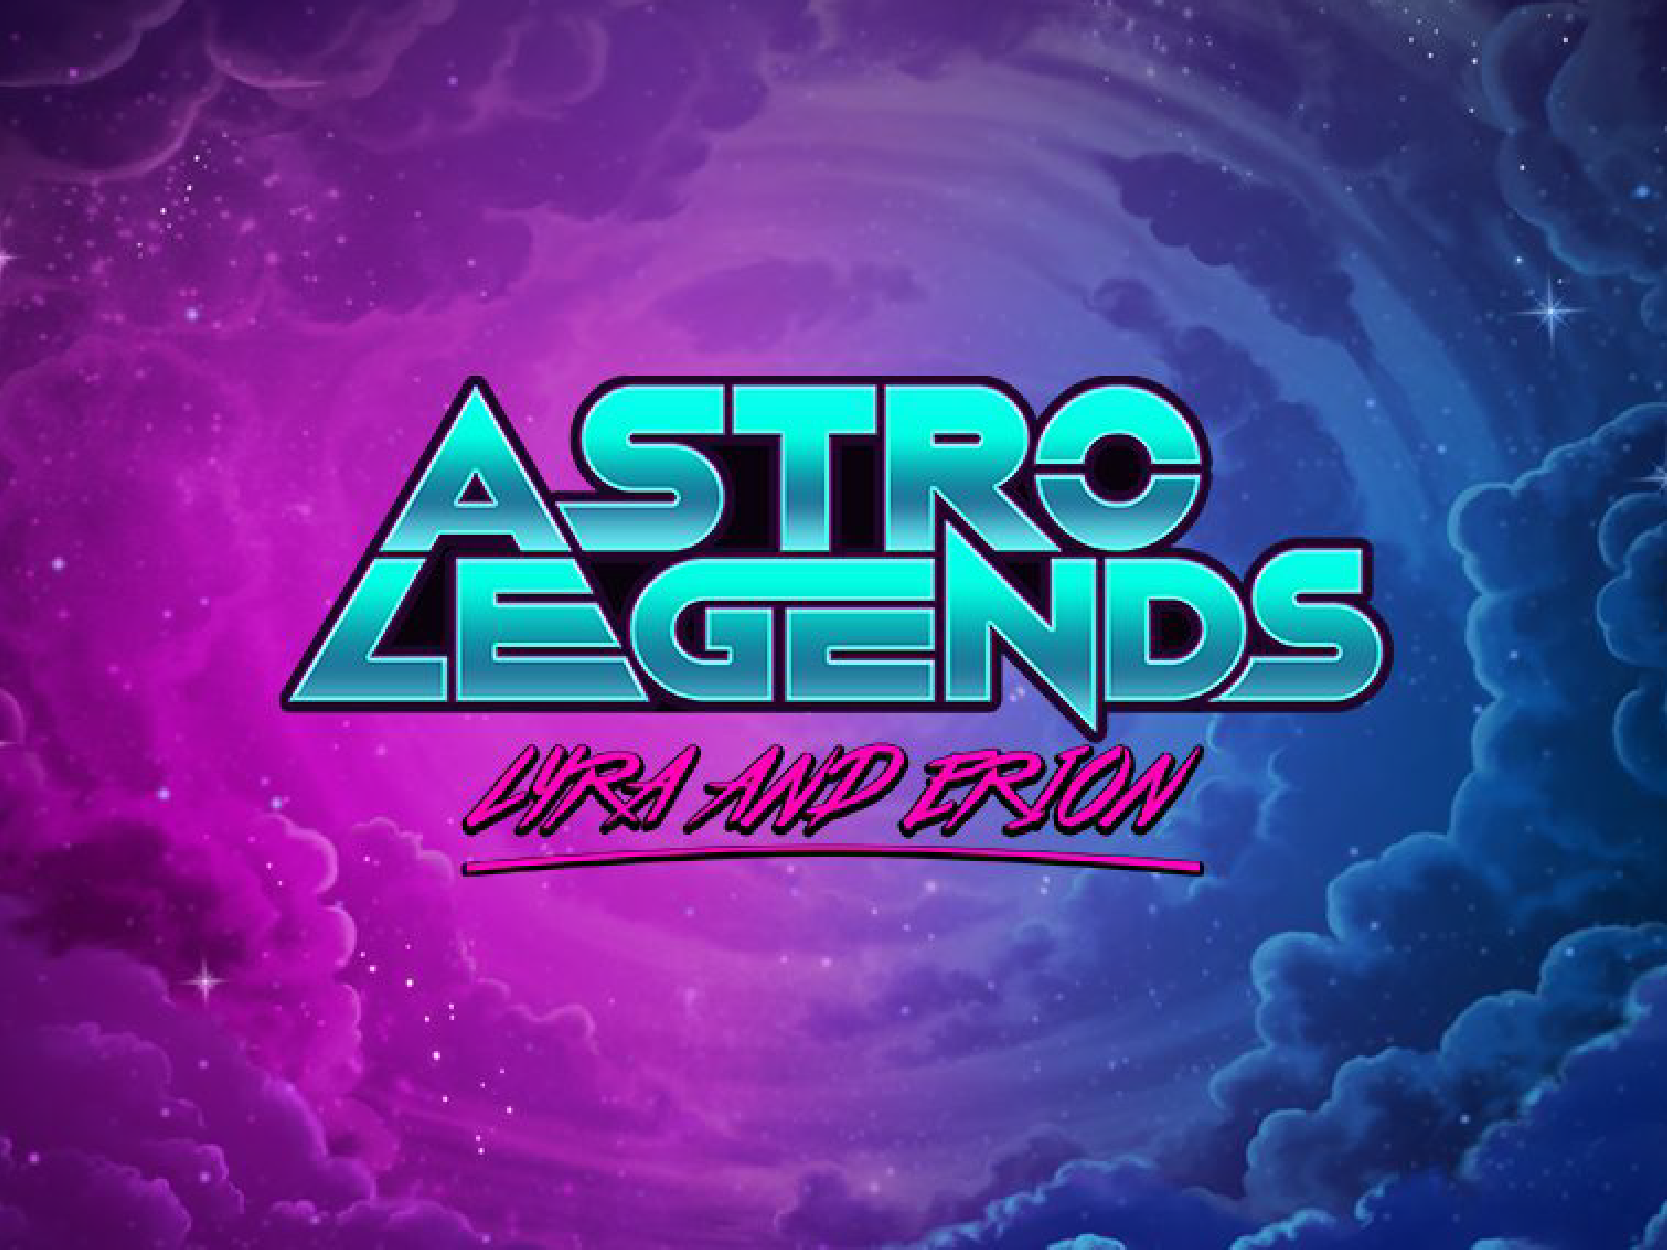 Quickfire's Latest Game – Astro Legends: Lyra And Erion Released